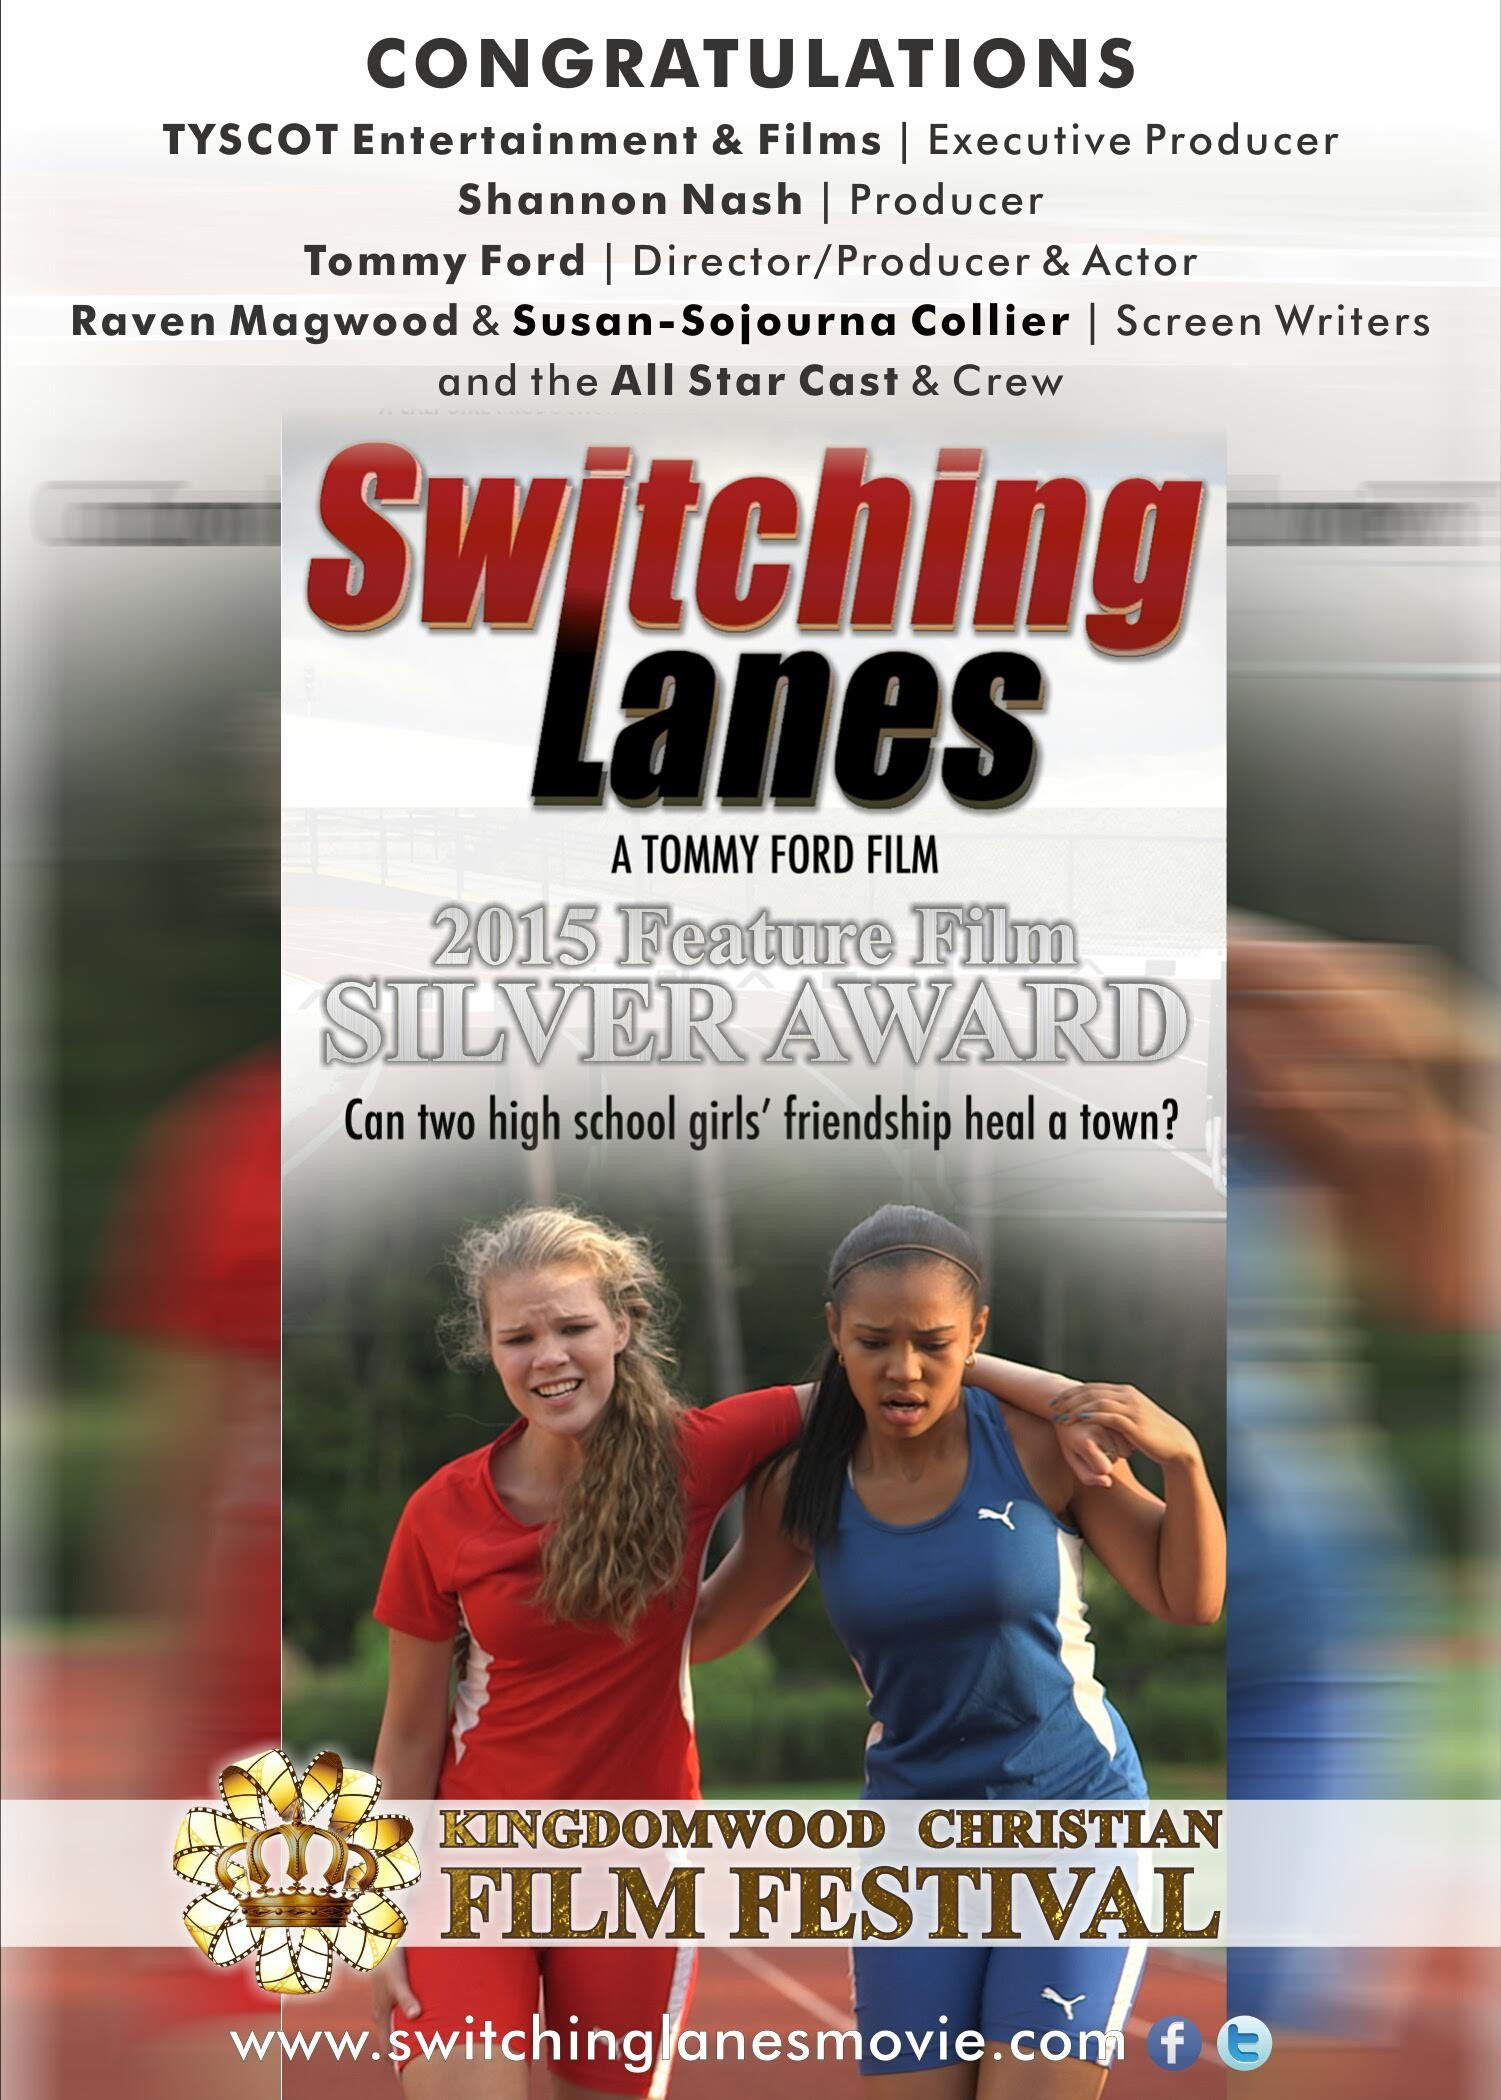 Switching Lanes follows the story of two girls